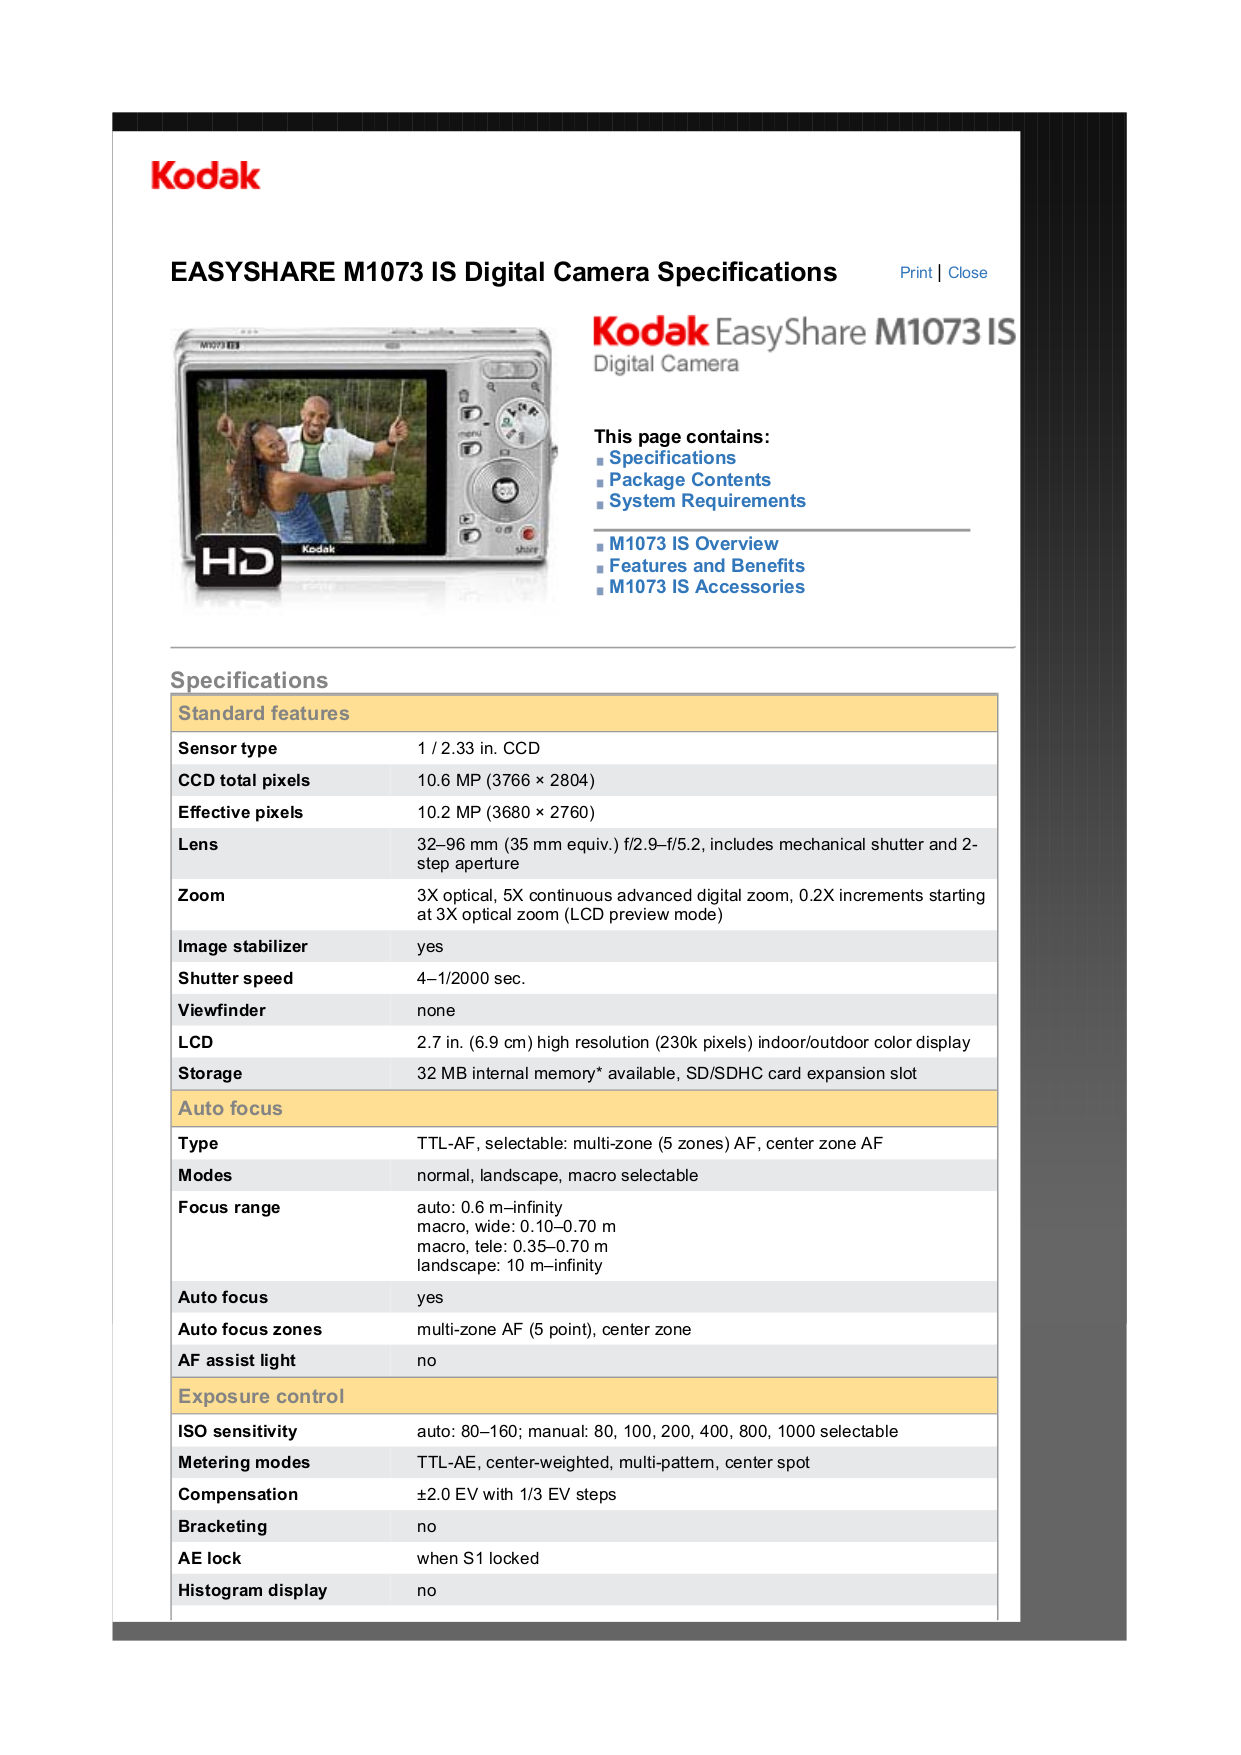 pdf for Kodak Digital Camera EasyShare M1073 IS manual